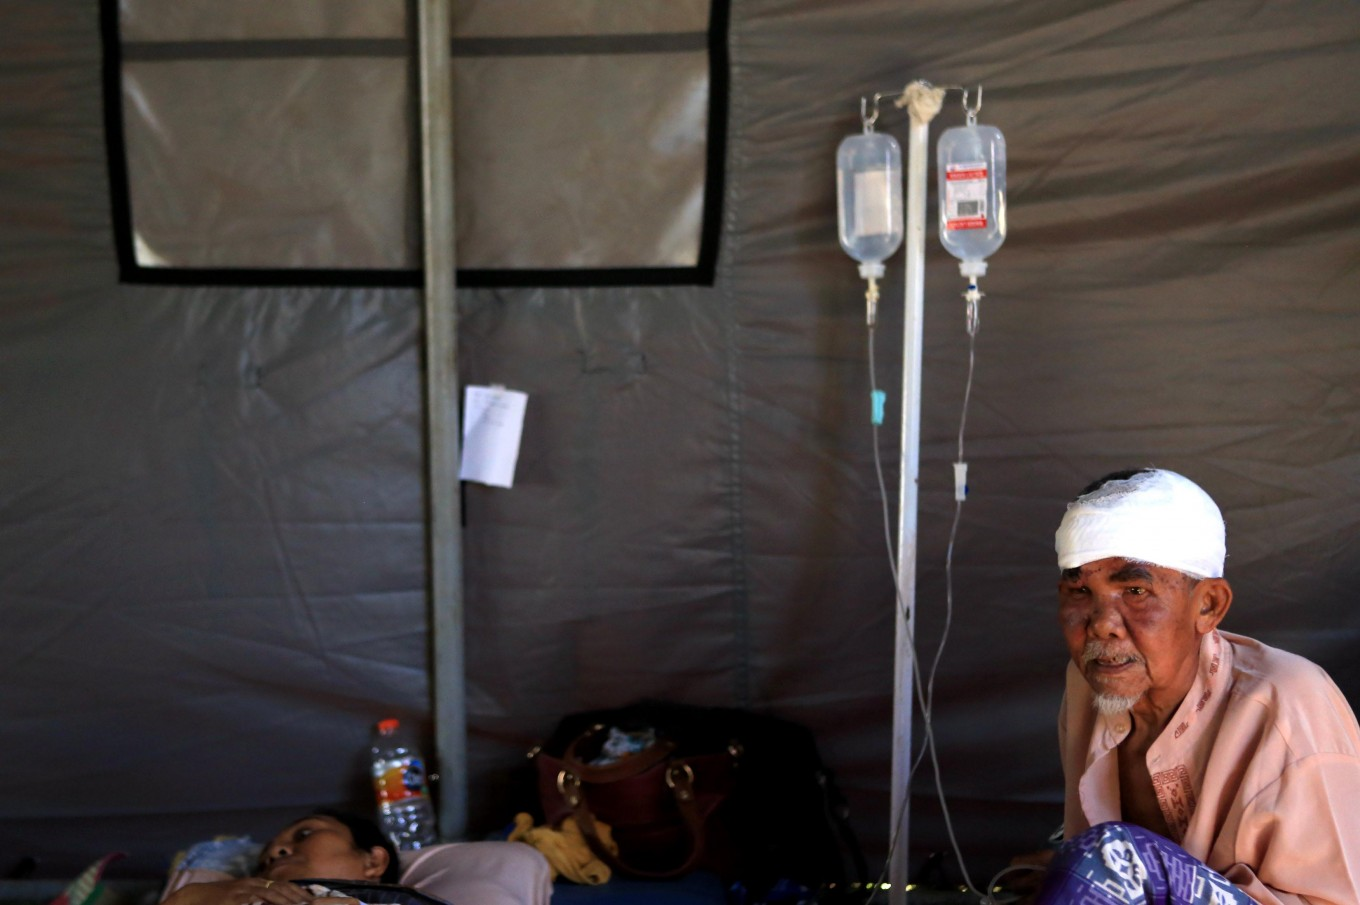 Injured victims receive treatment outside Tanjung Hospital in North Lombok on Aug. 8, 2018. JP/Seto Wardhana